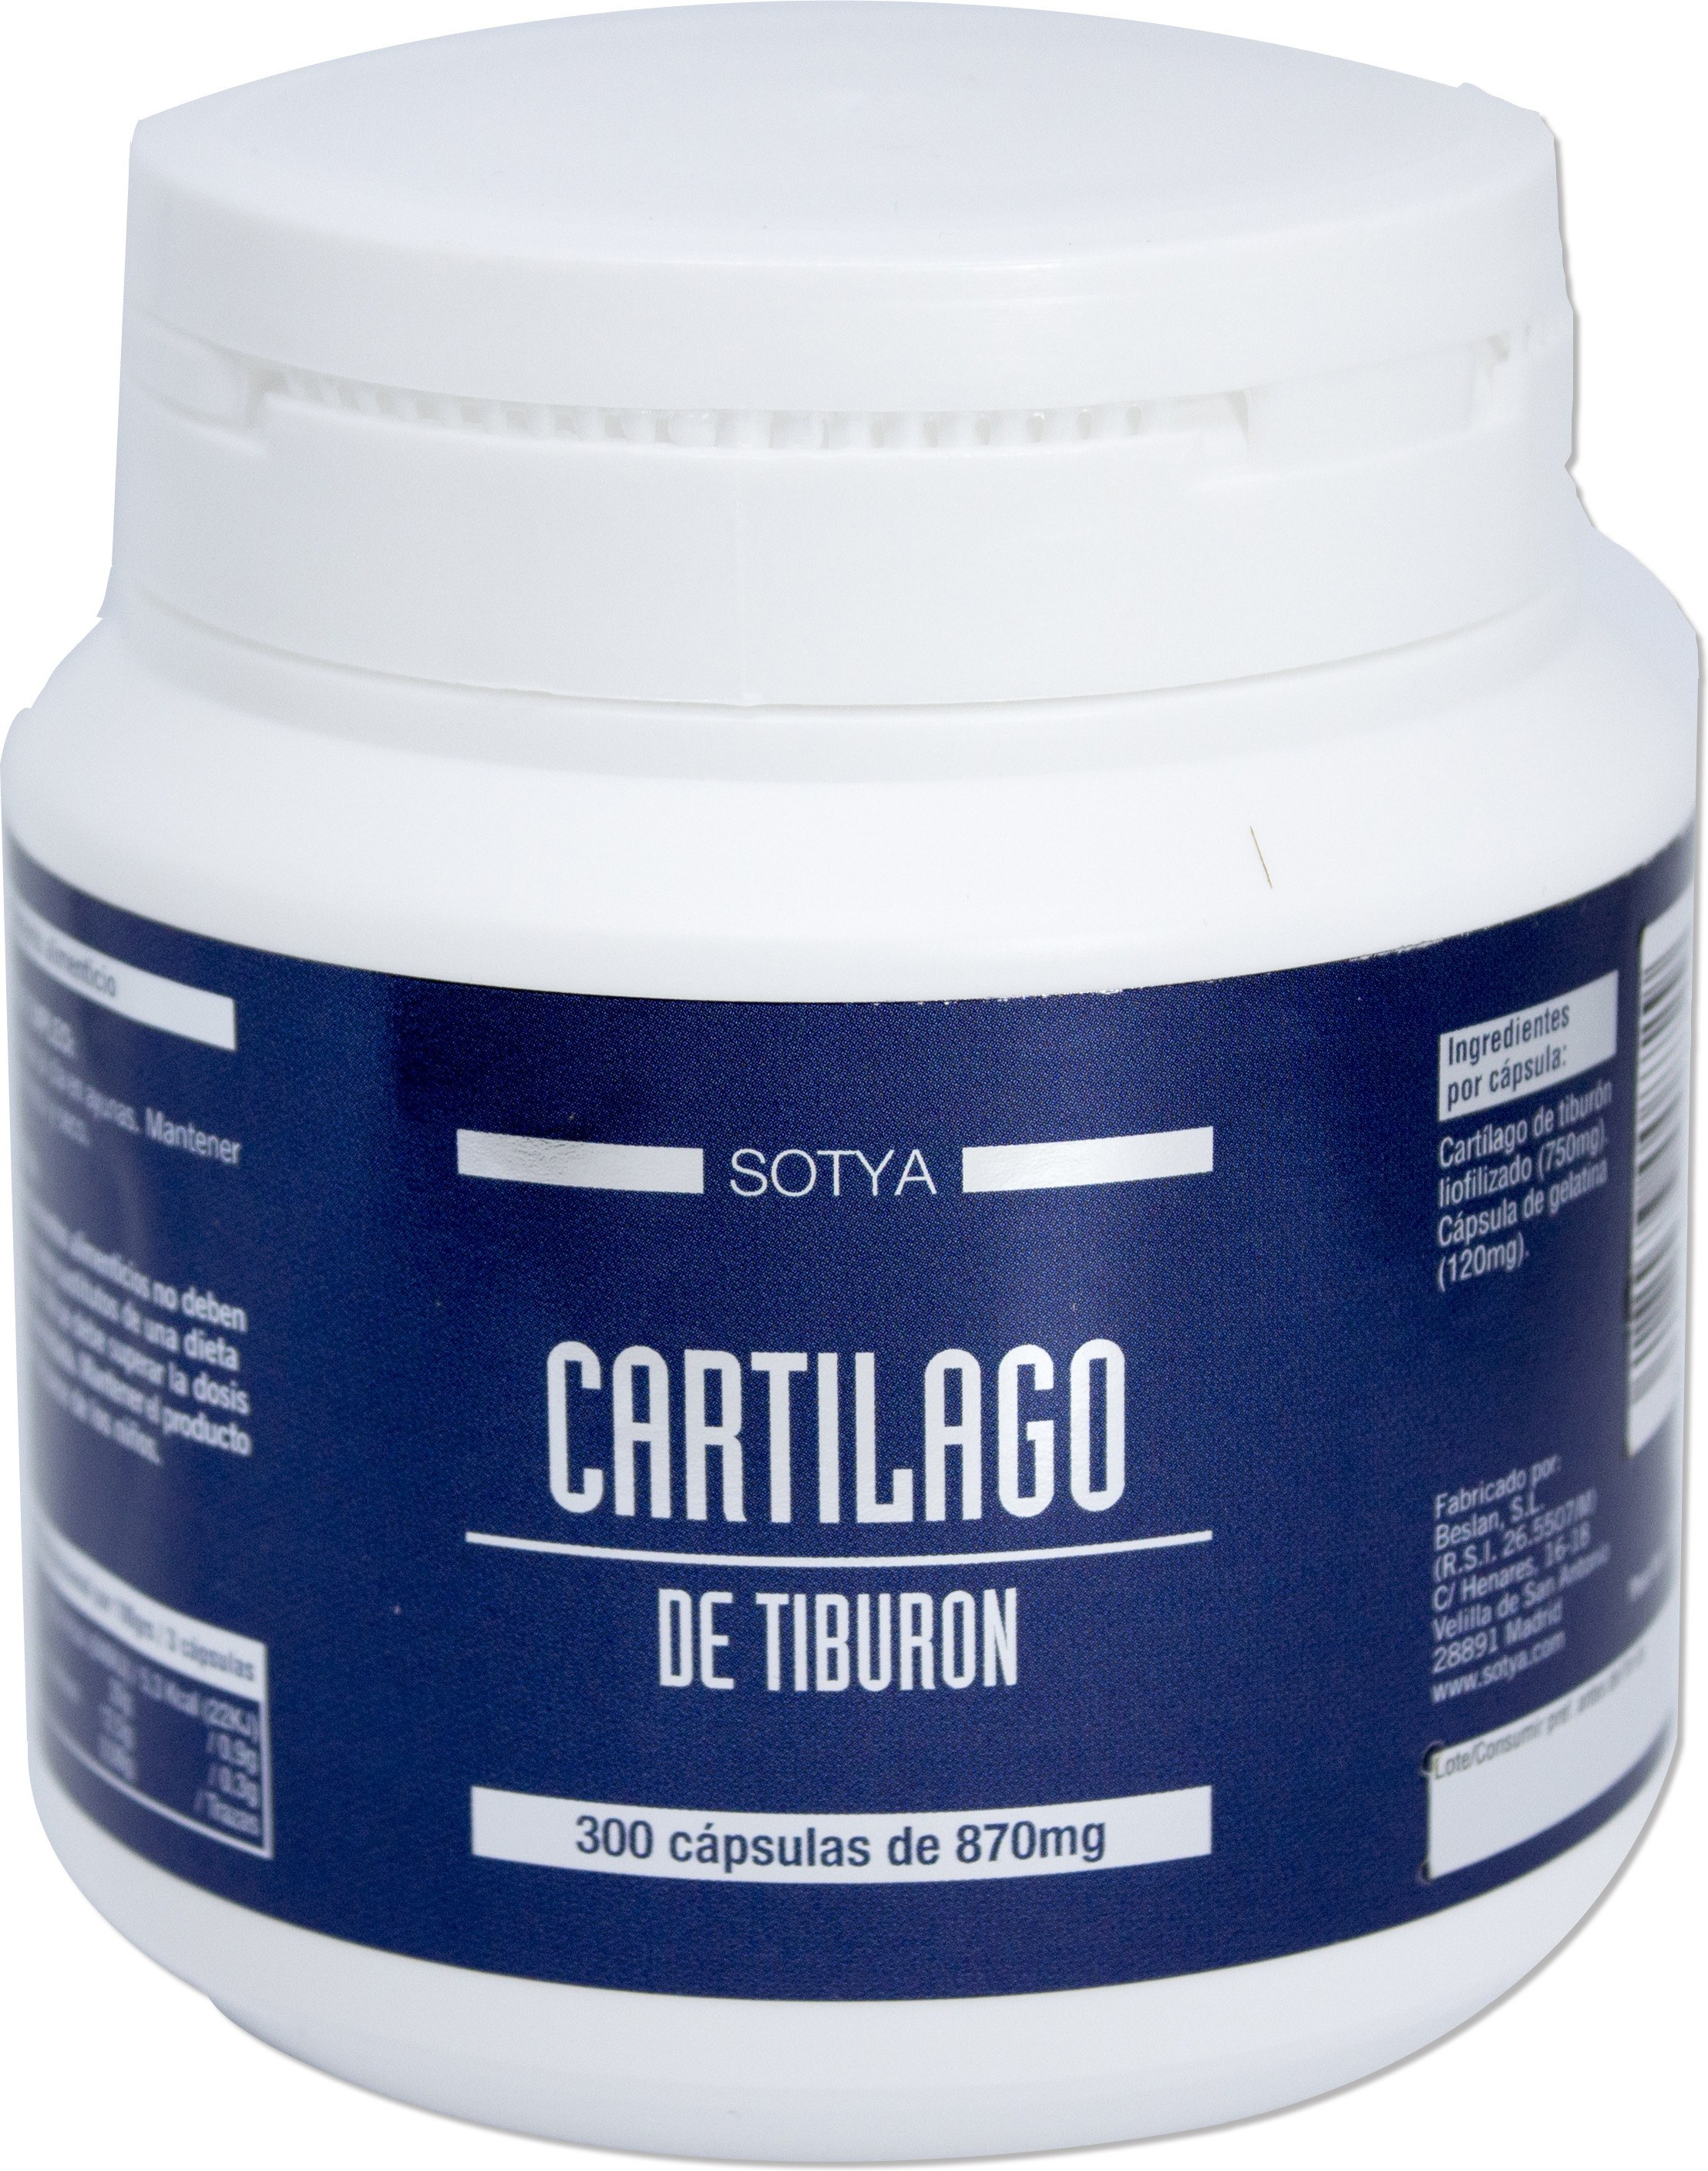 Sotya Cartilago Tiburon 870 Mg 300 Caps